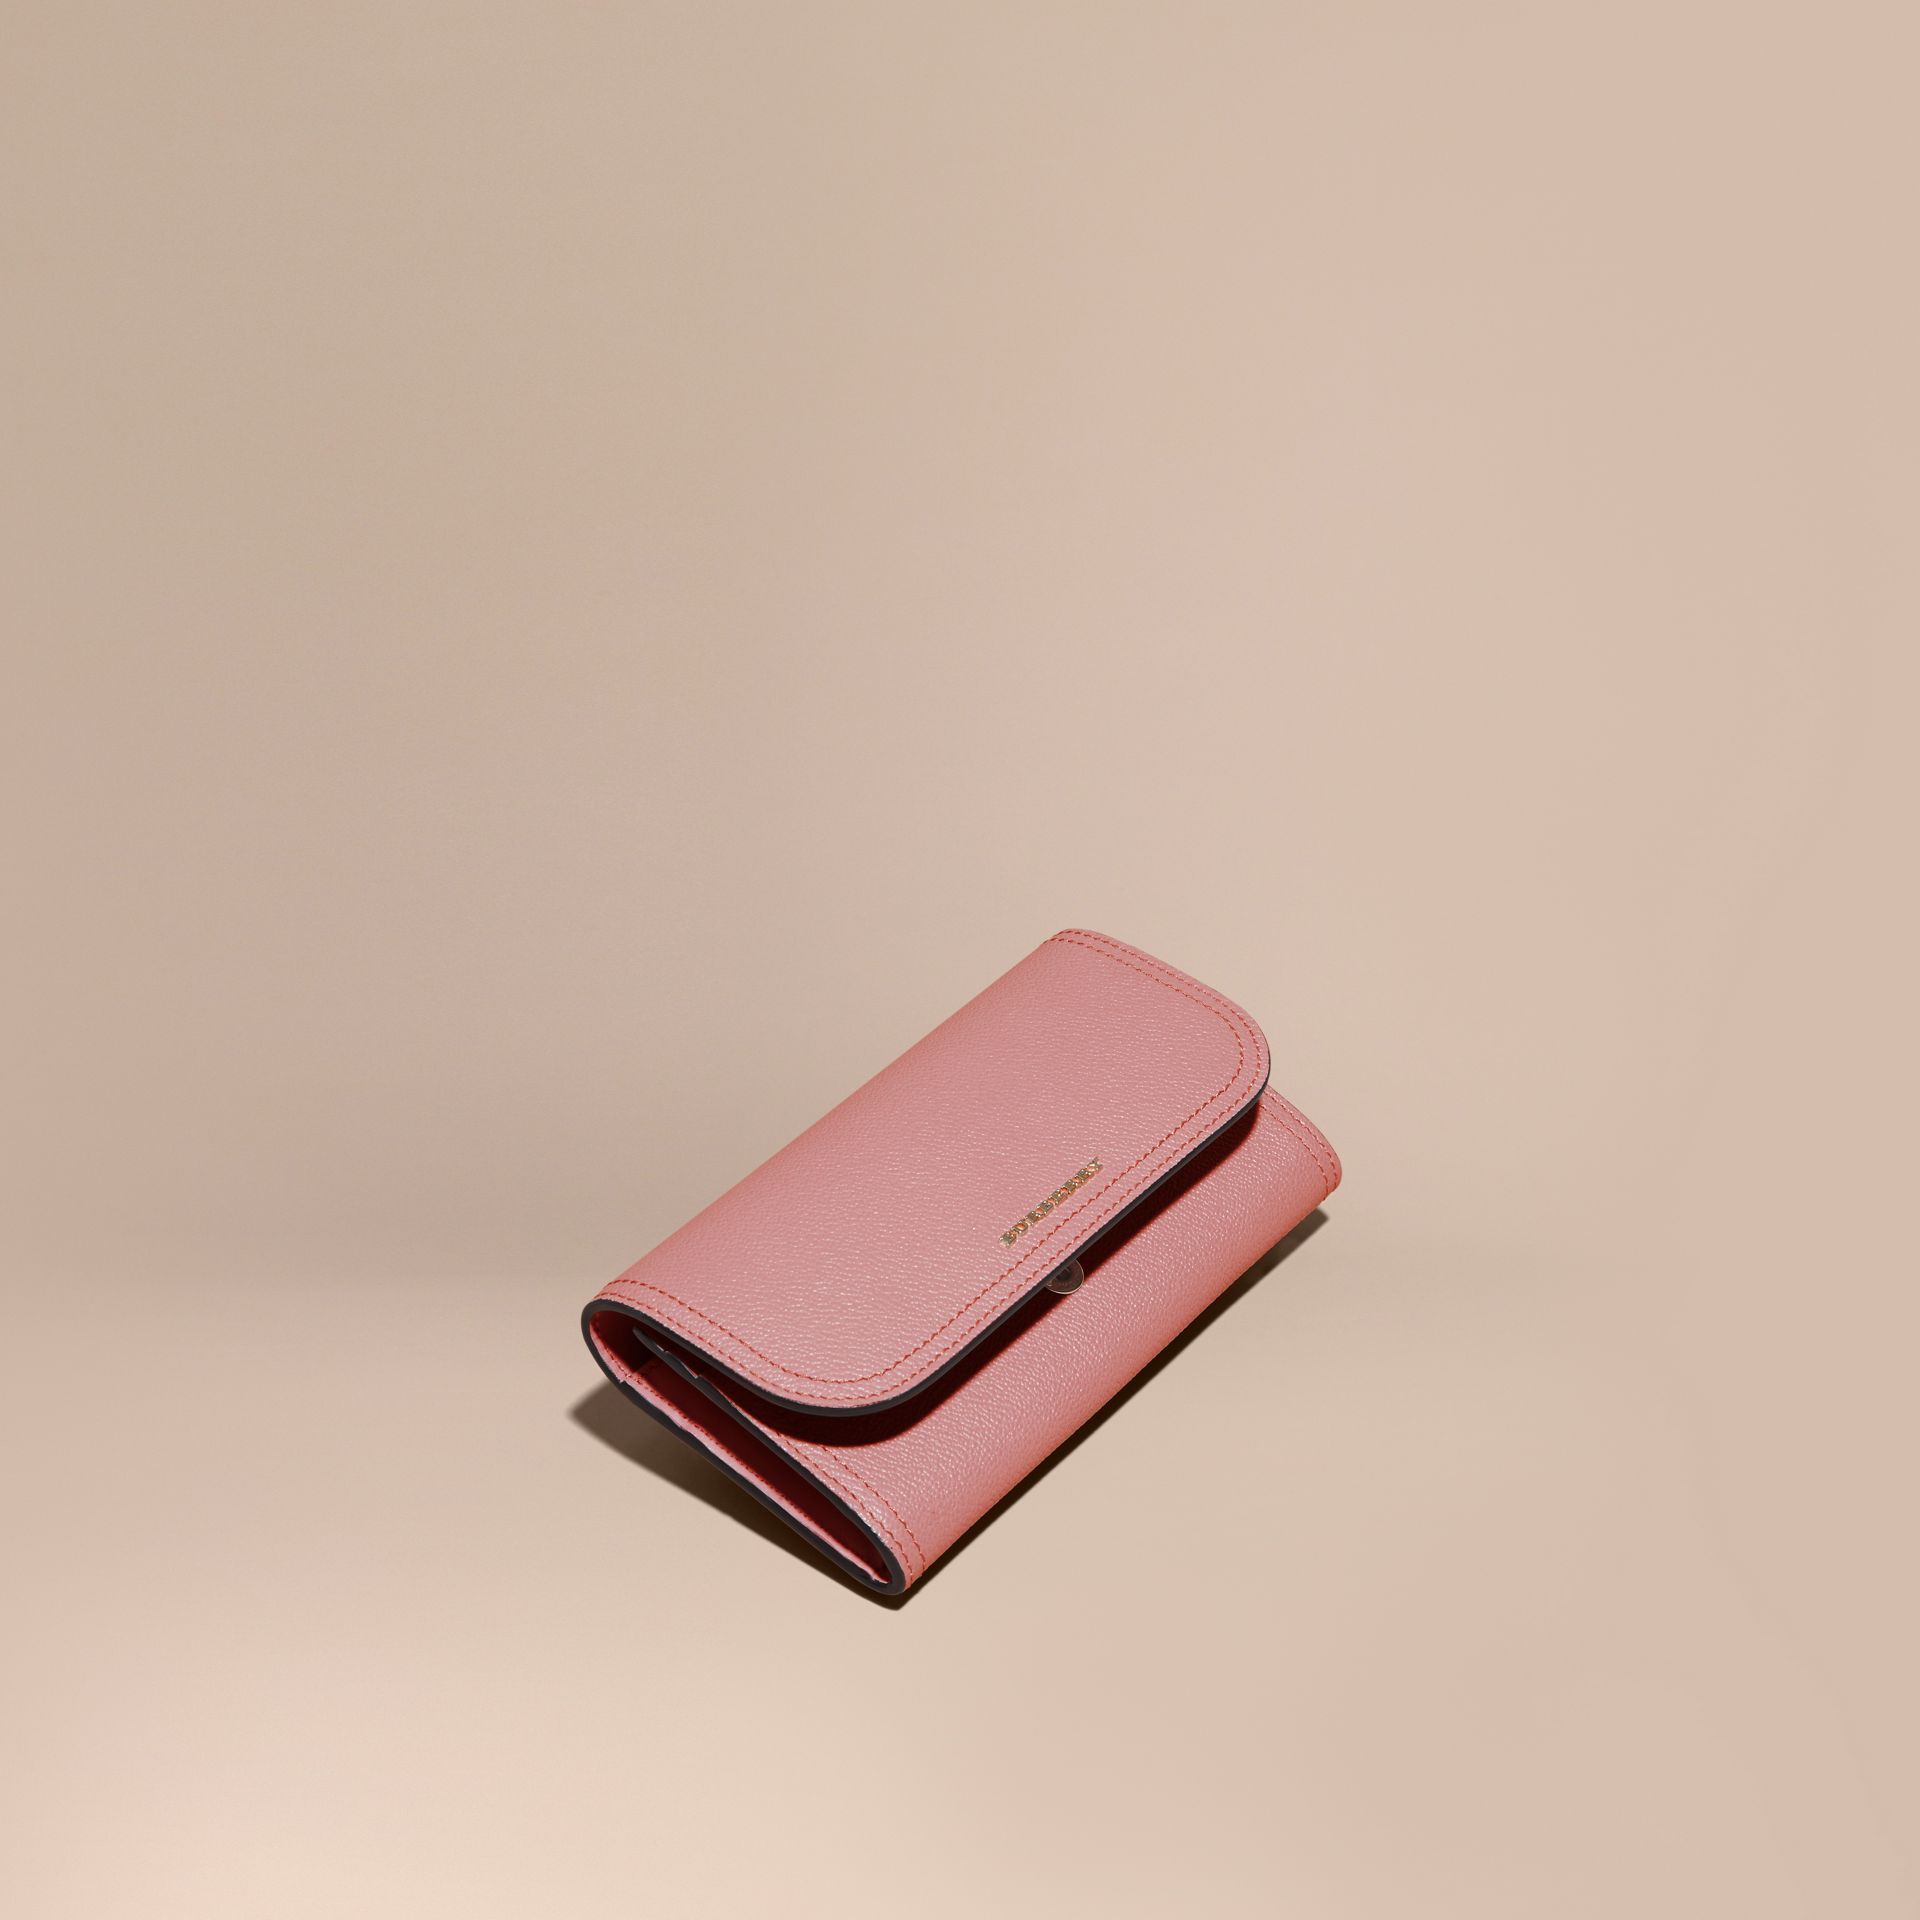 Grainy Leather Slim Continental Wallet in Dusty Pink - Women | Burberry Singapore - gallery image 1